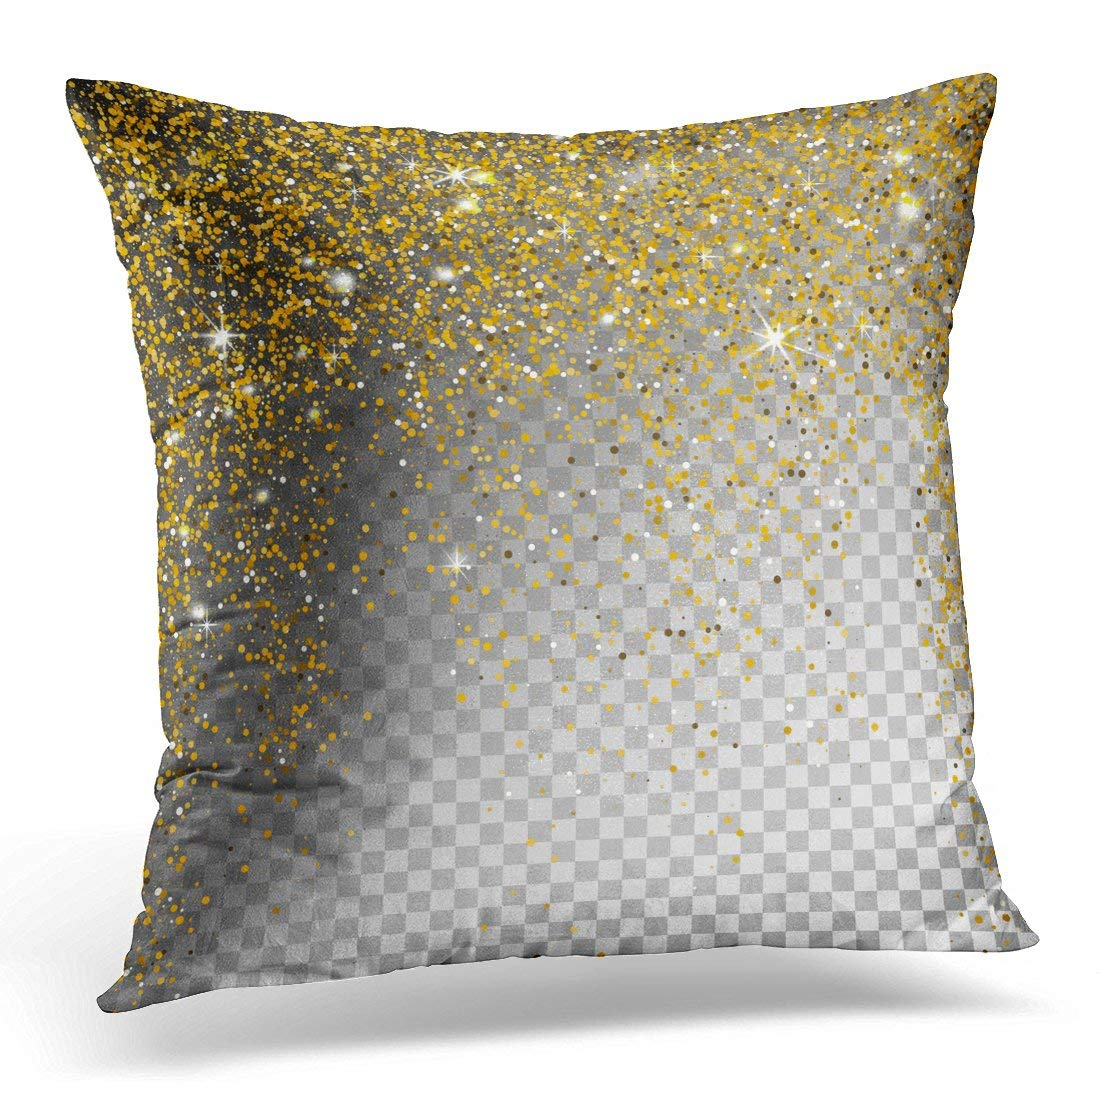 USART Black Golden Christmas Falling Snow Gold Glitter Particles on Sparcle Abstract Snowflake Yellow Festive Pillow Case Pillow Cover 20x20 inch